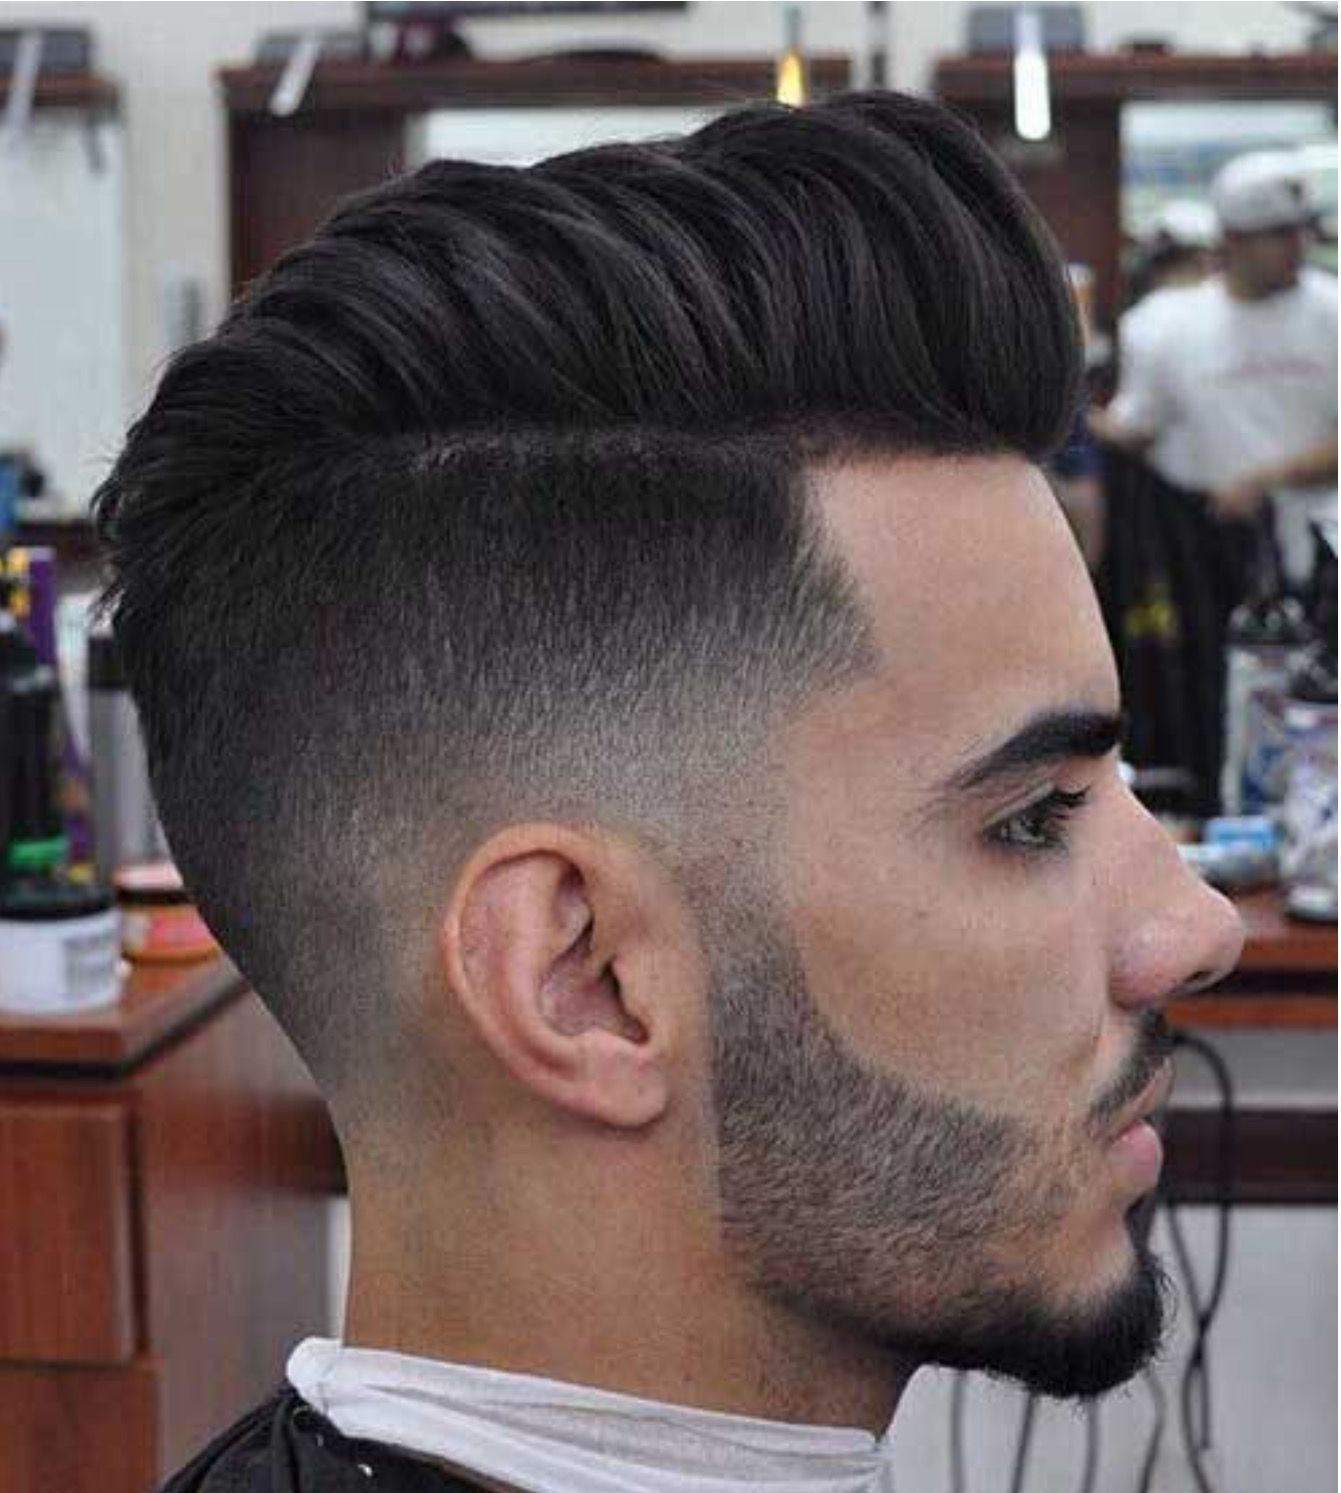 New hairstyle boys best hair style men pinterest hair styles